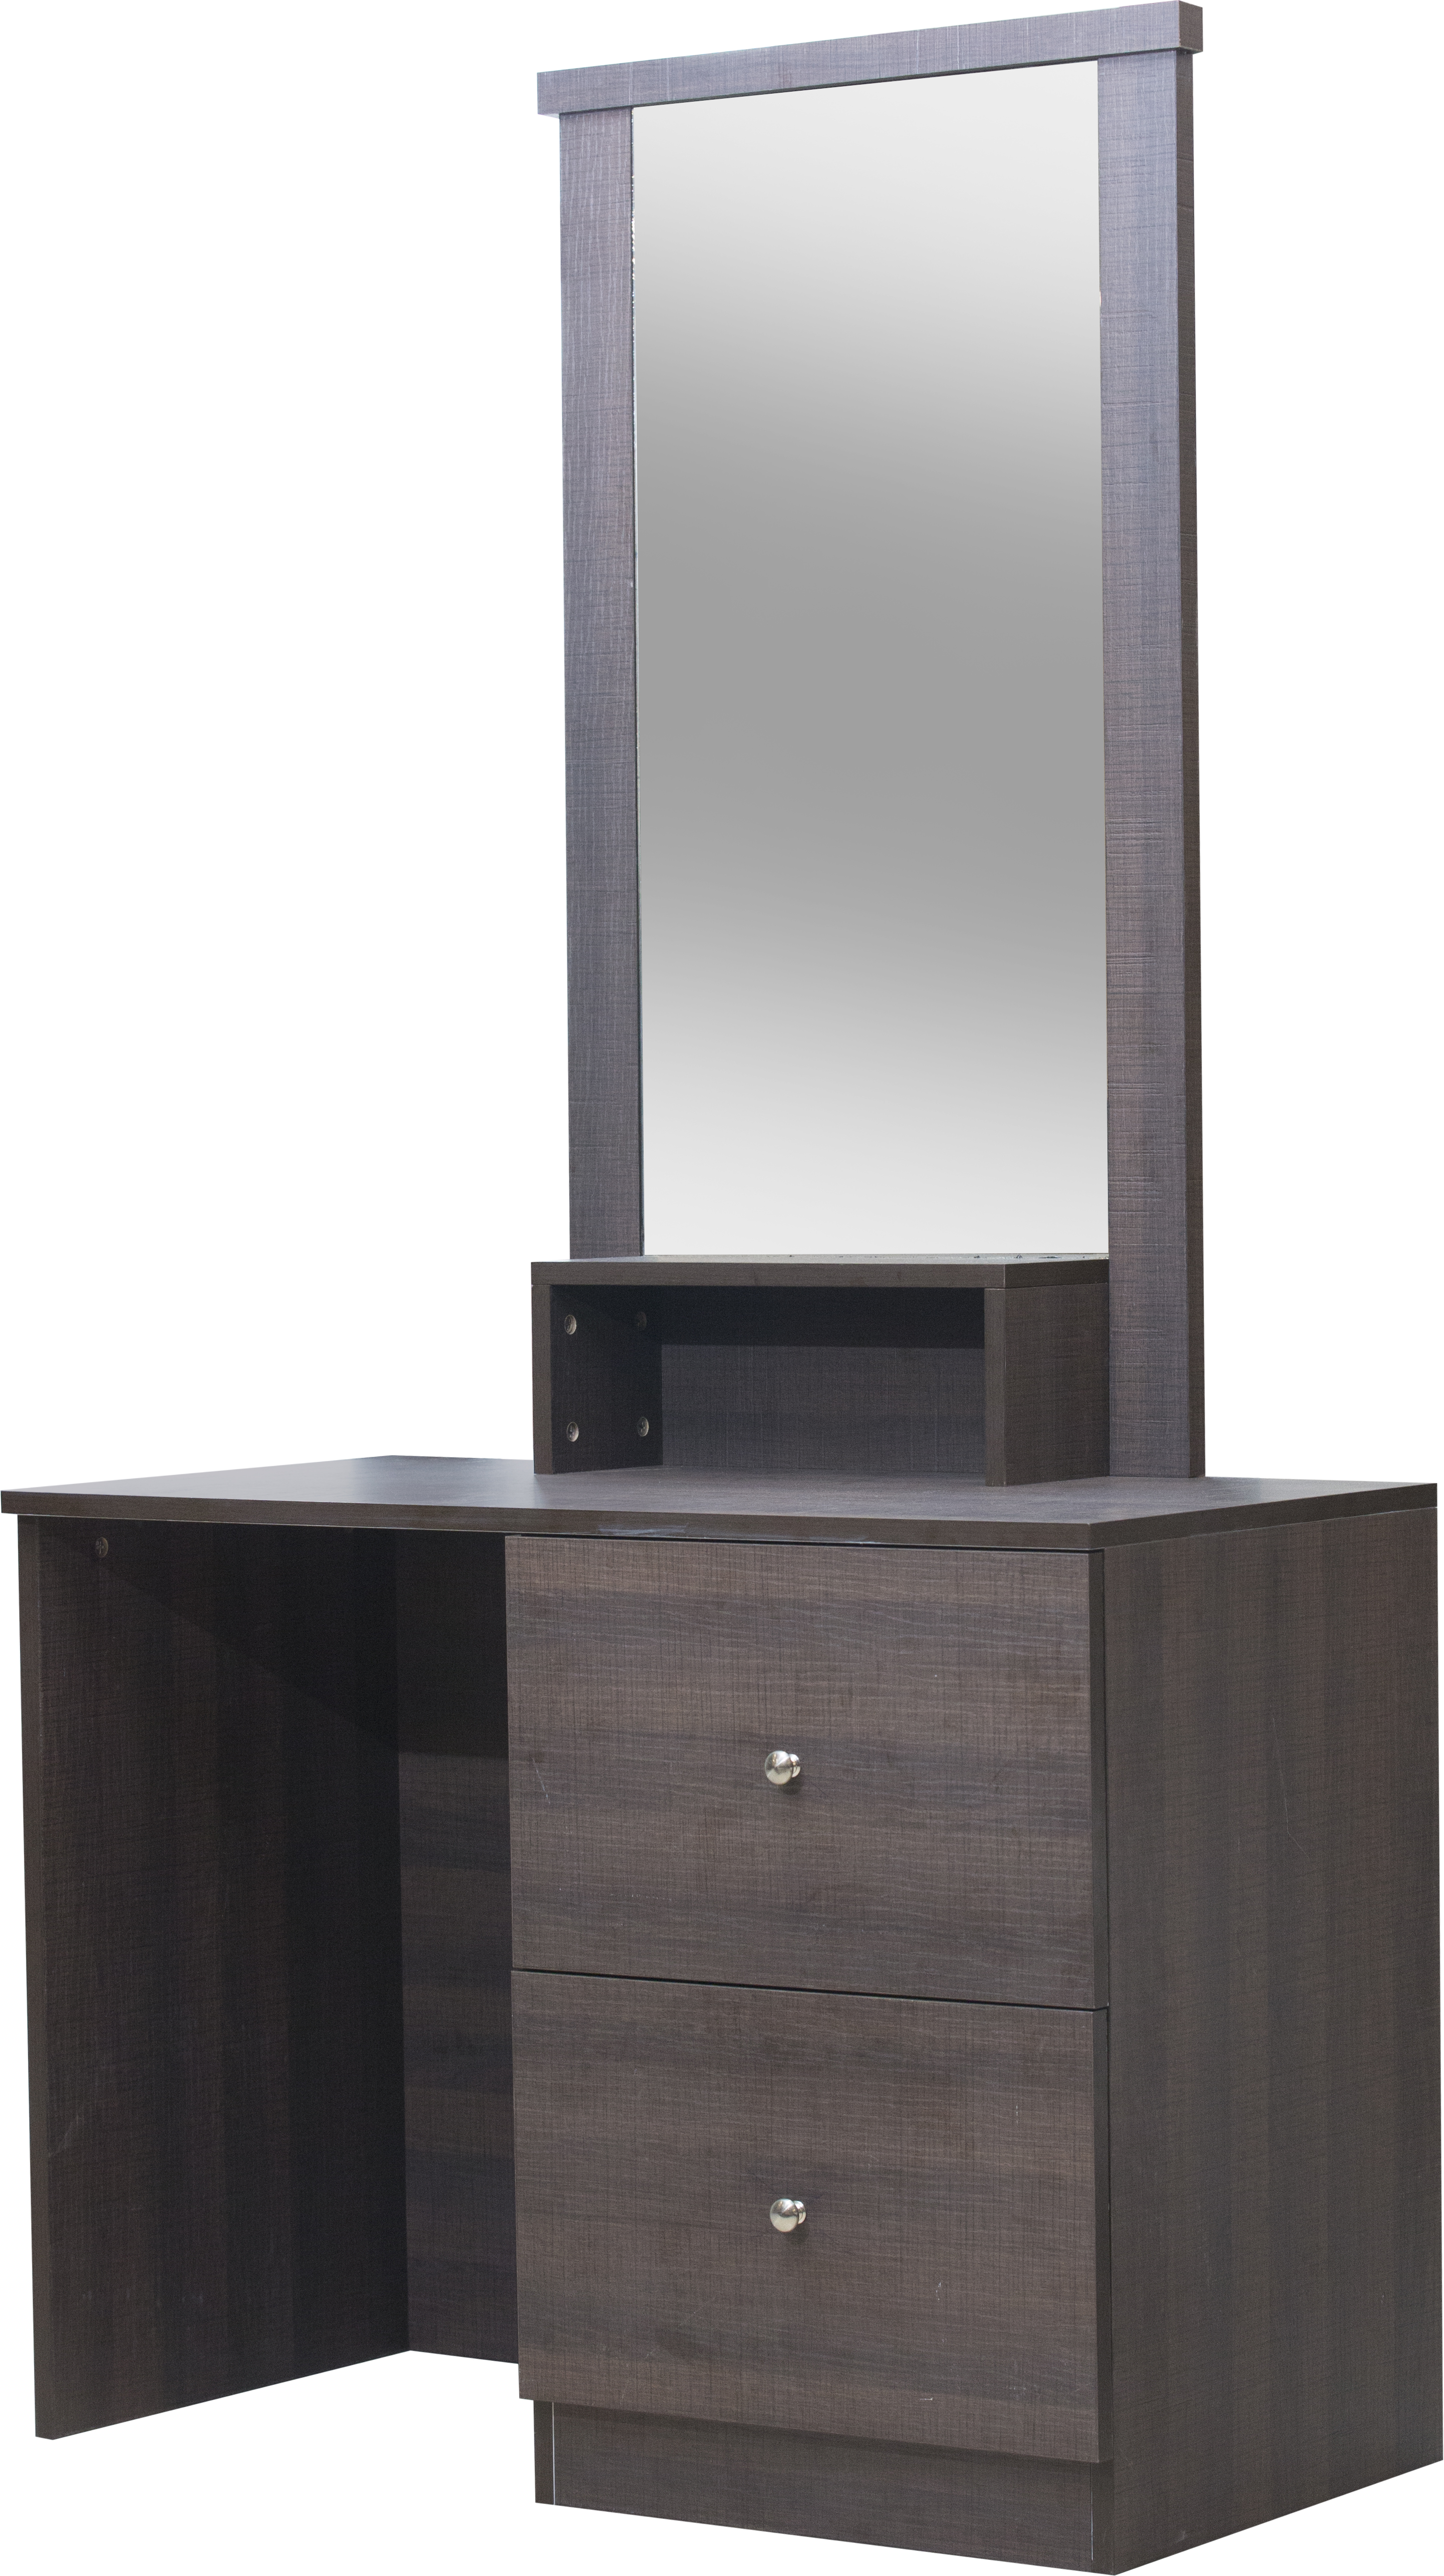 Dressing Table and side tables in Bedroom Furniture at Indroyal